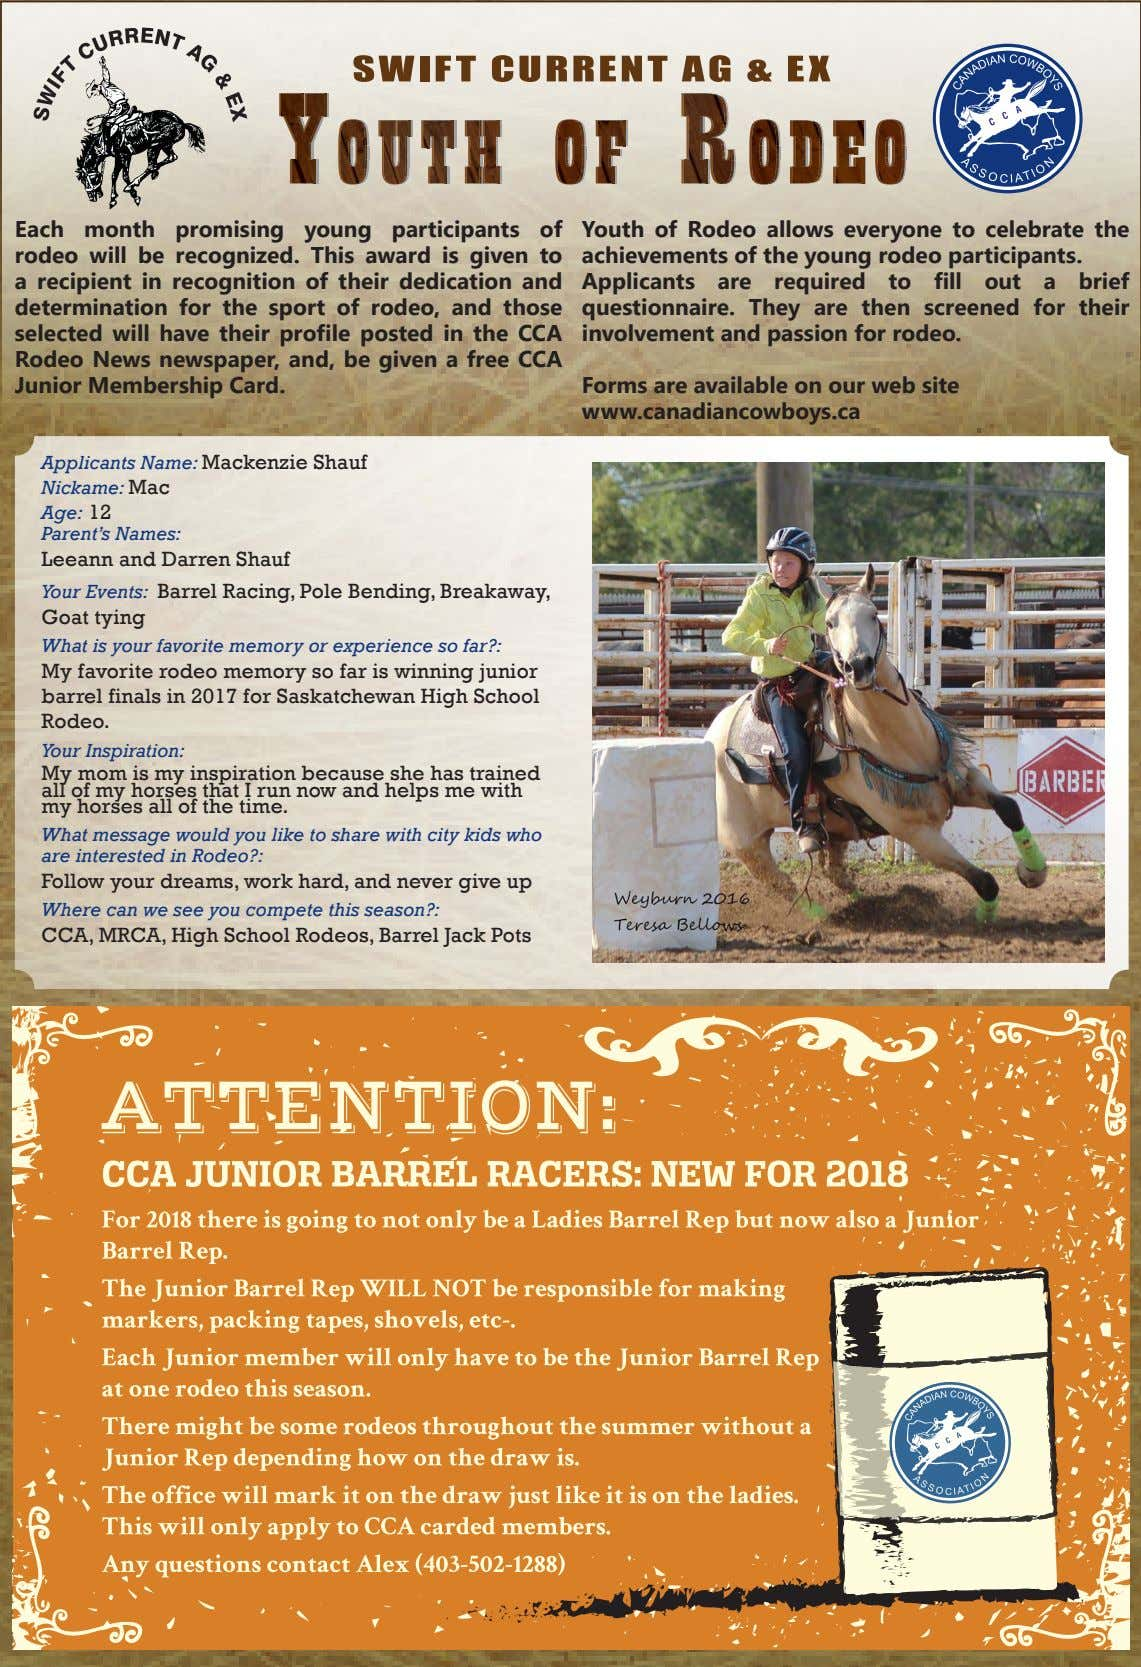 Each month promising young participants of rodeo will be recognized. This award is given to